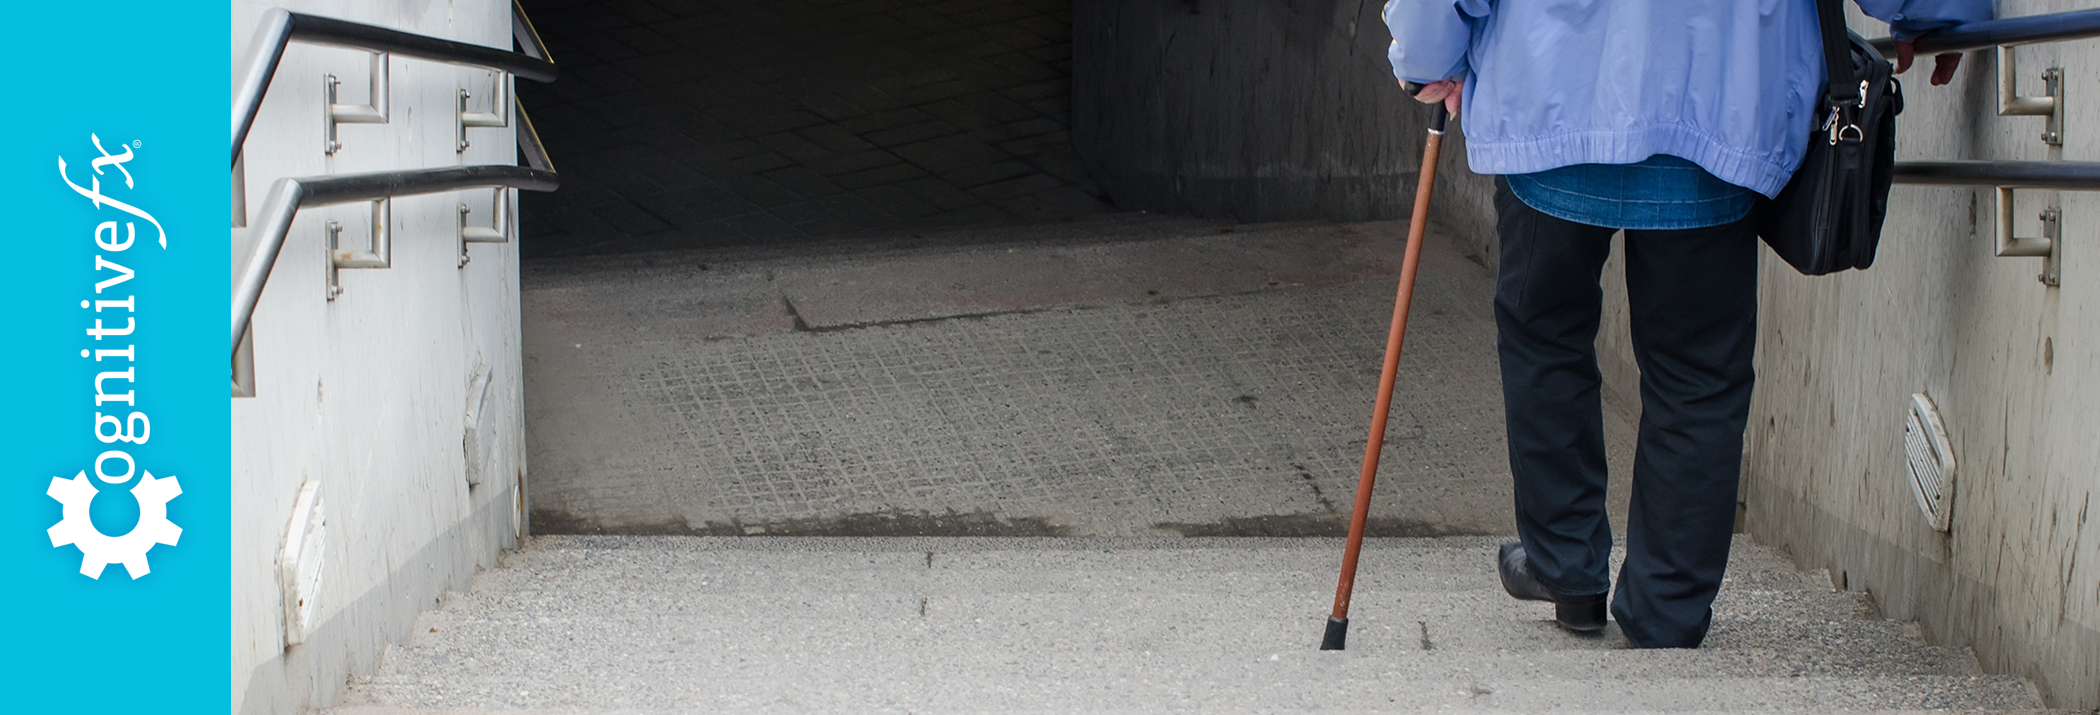 8 Fall Prevention Tips for your Grandparents